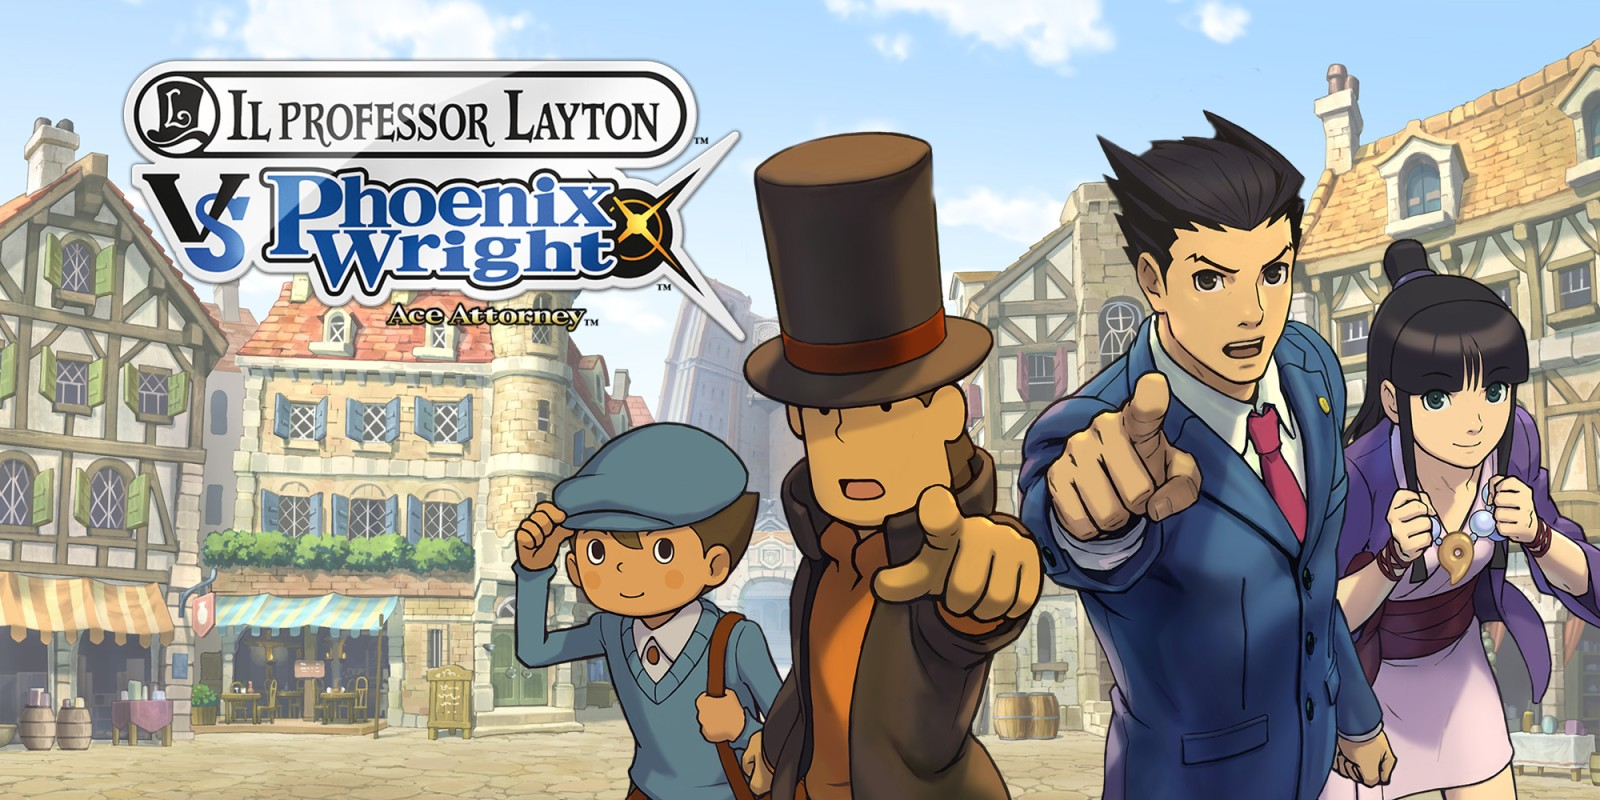 Il Professor Layton vs. Phoenix Wright: Ace Attorney